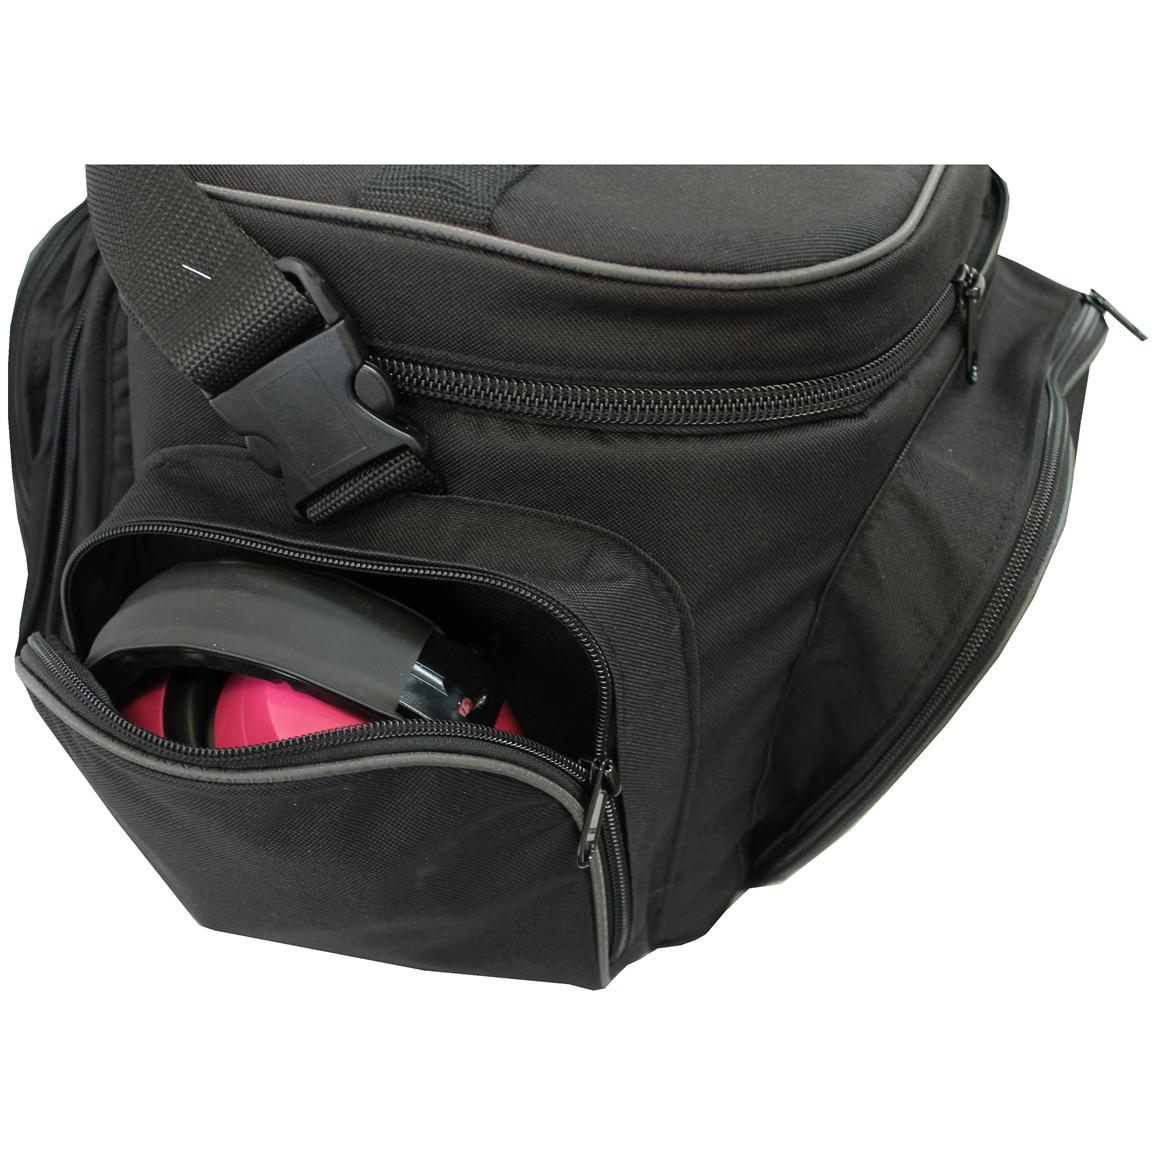 Side pockets hold two sets of hearing protection